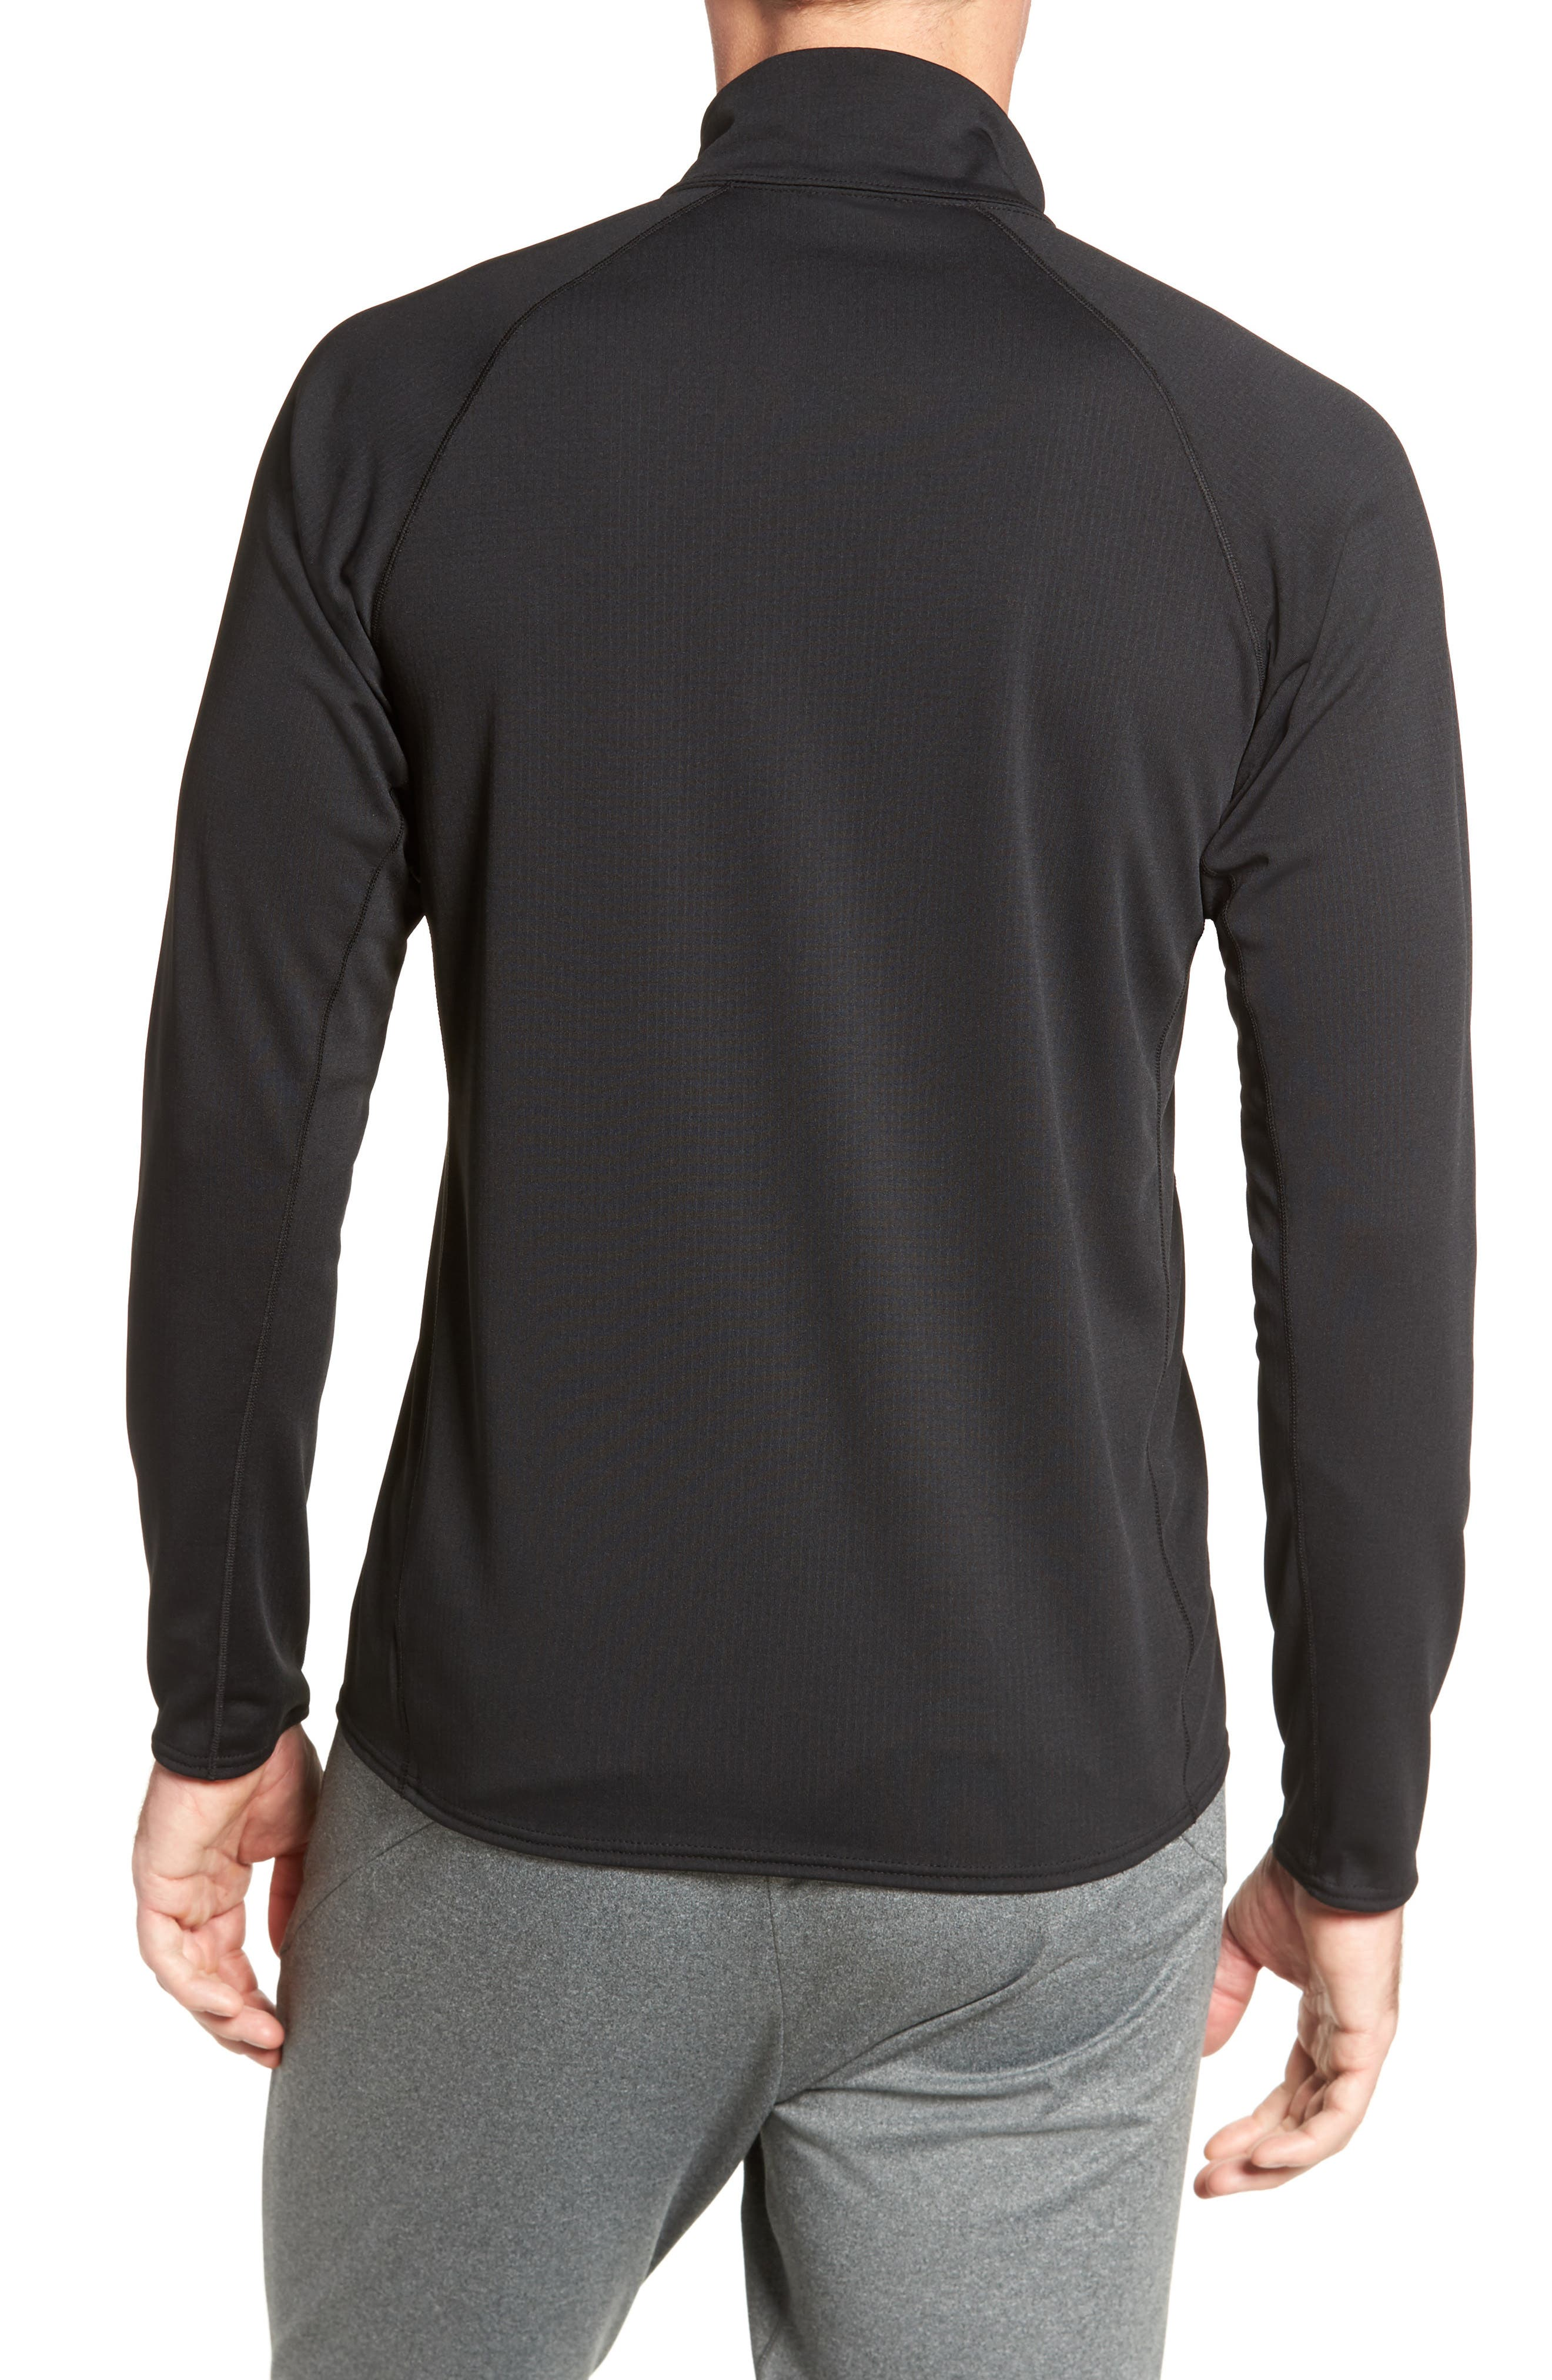 Capilene Midweight Pullover,                             Alternate thumbnail 2, color,                             001